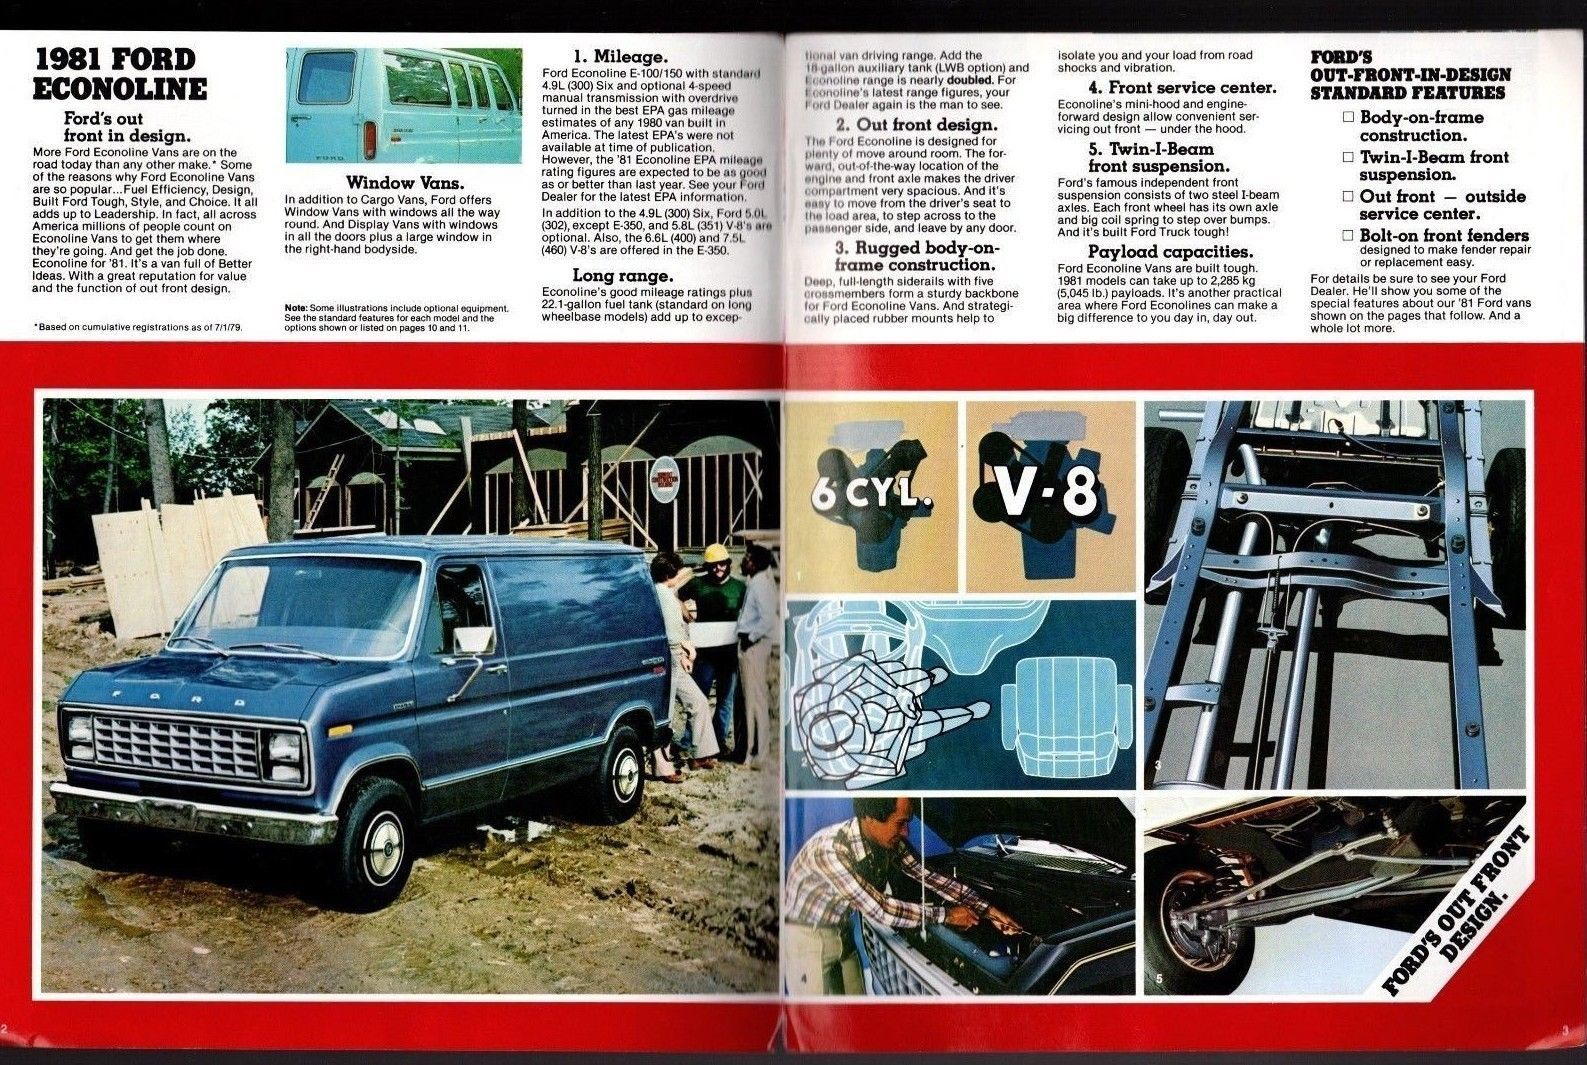 Original 1981 Ford Econoline Van Chateau and 33 similar items